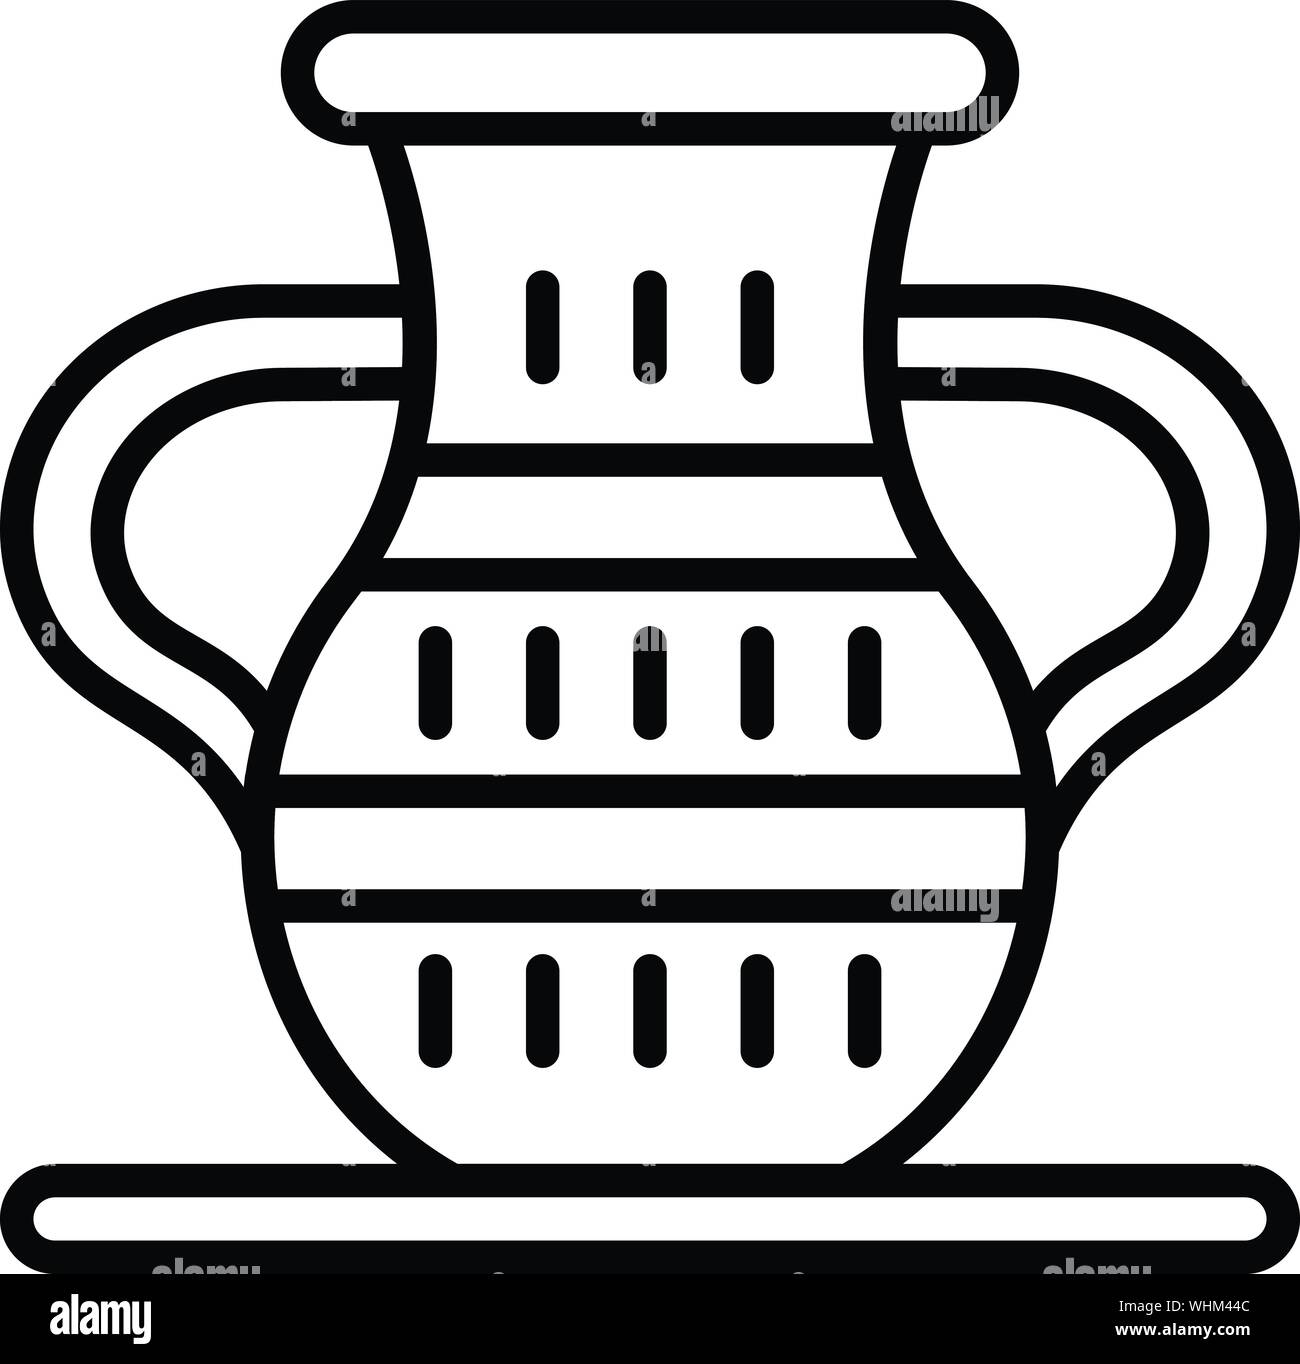 Egyptian vase icon, outline style Stock Vector